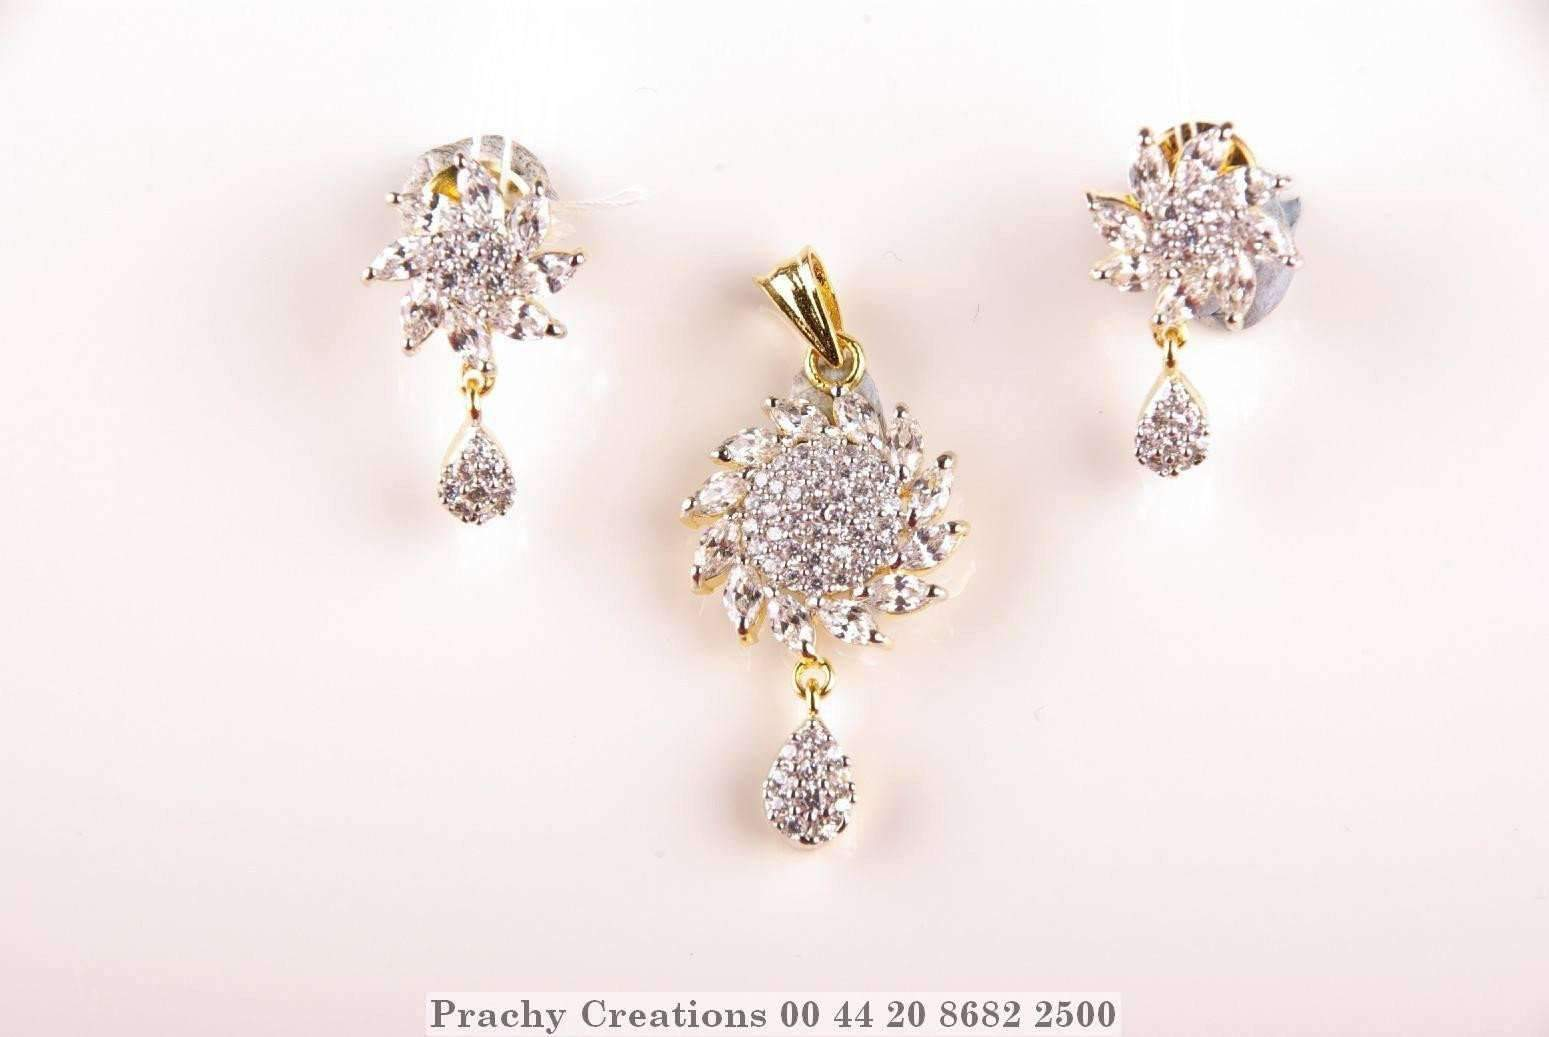 Floral pendant set with earrings 1073-92 - Prachy Creations